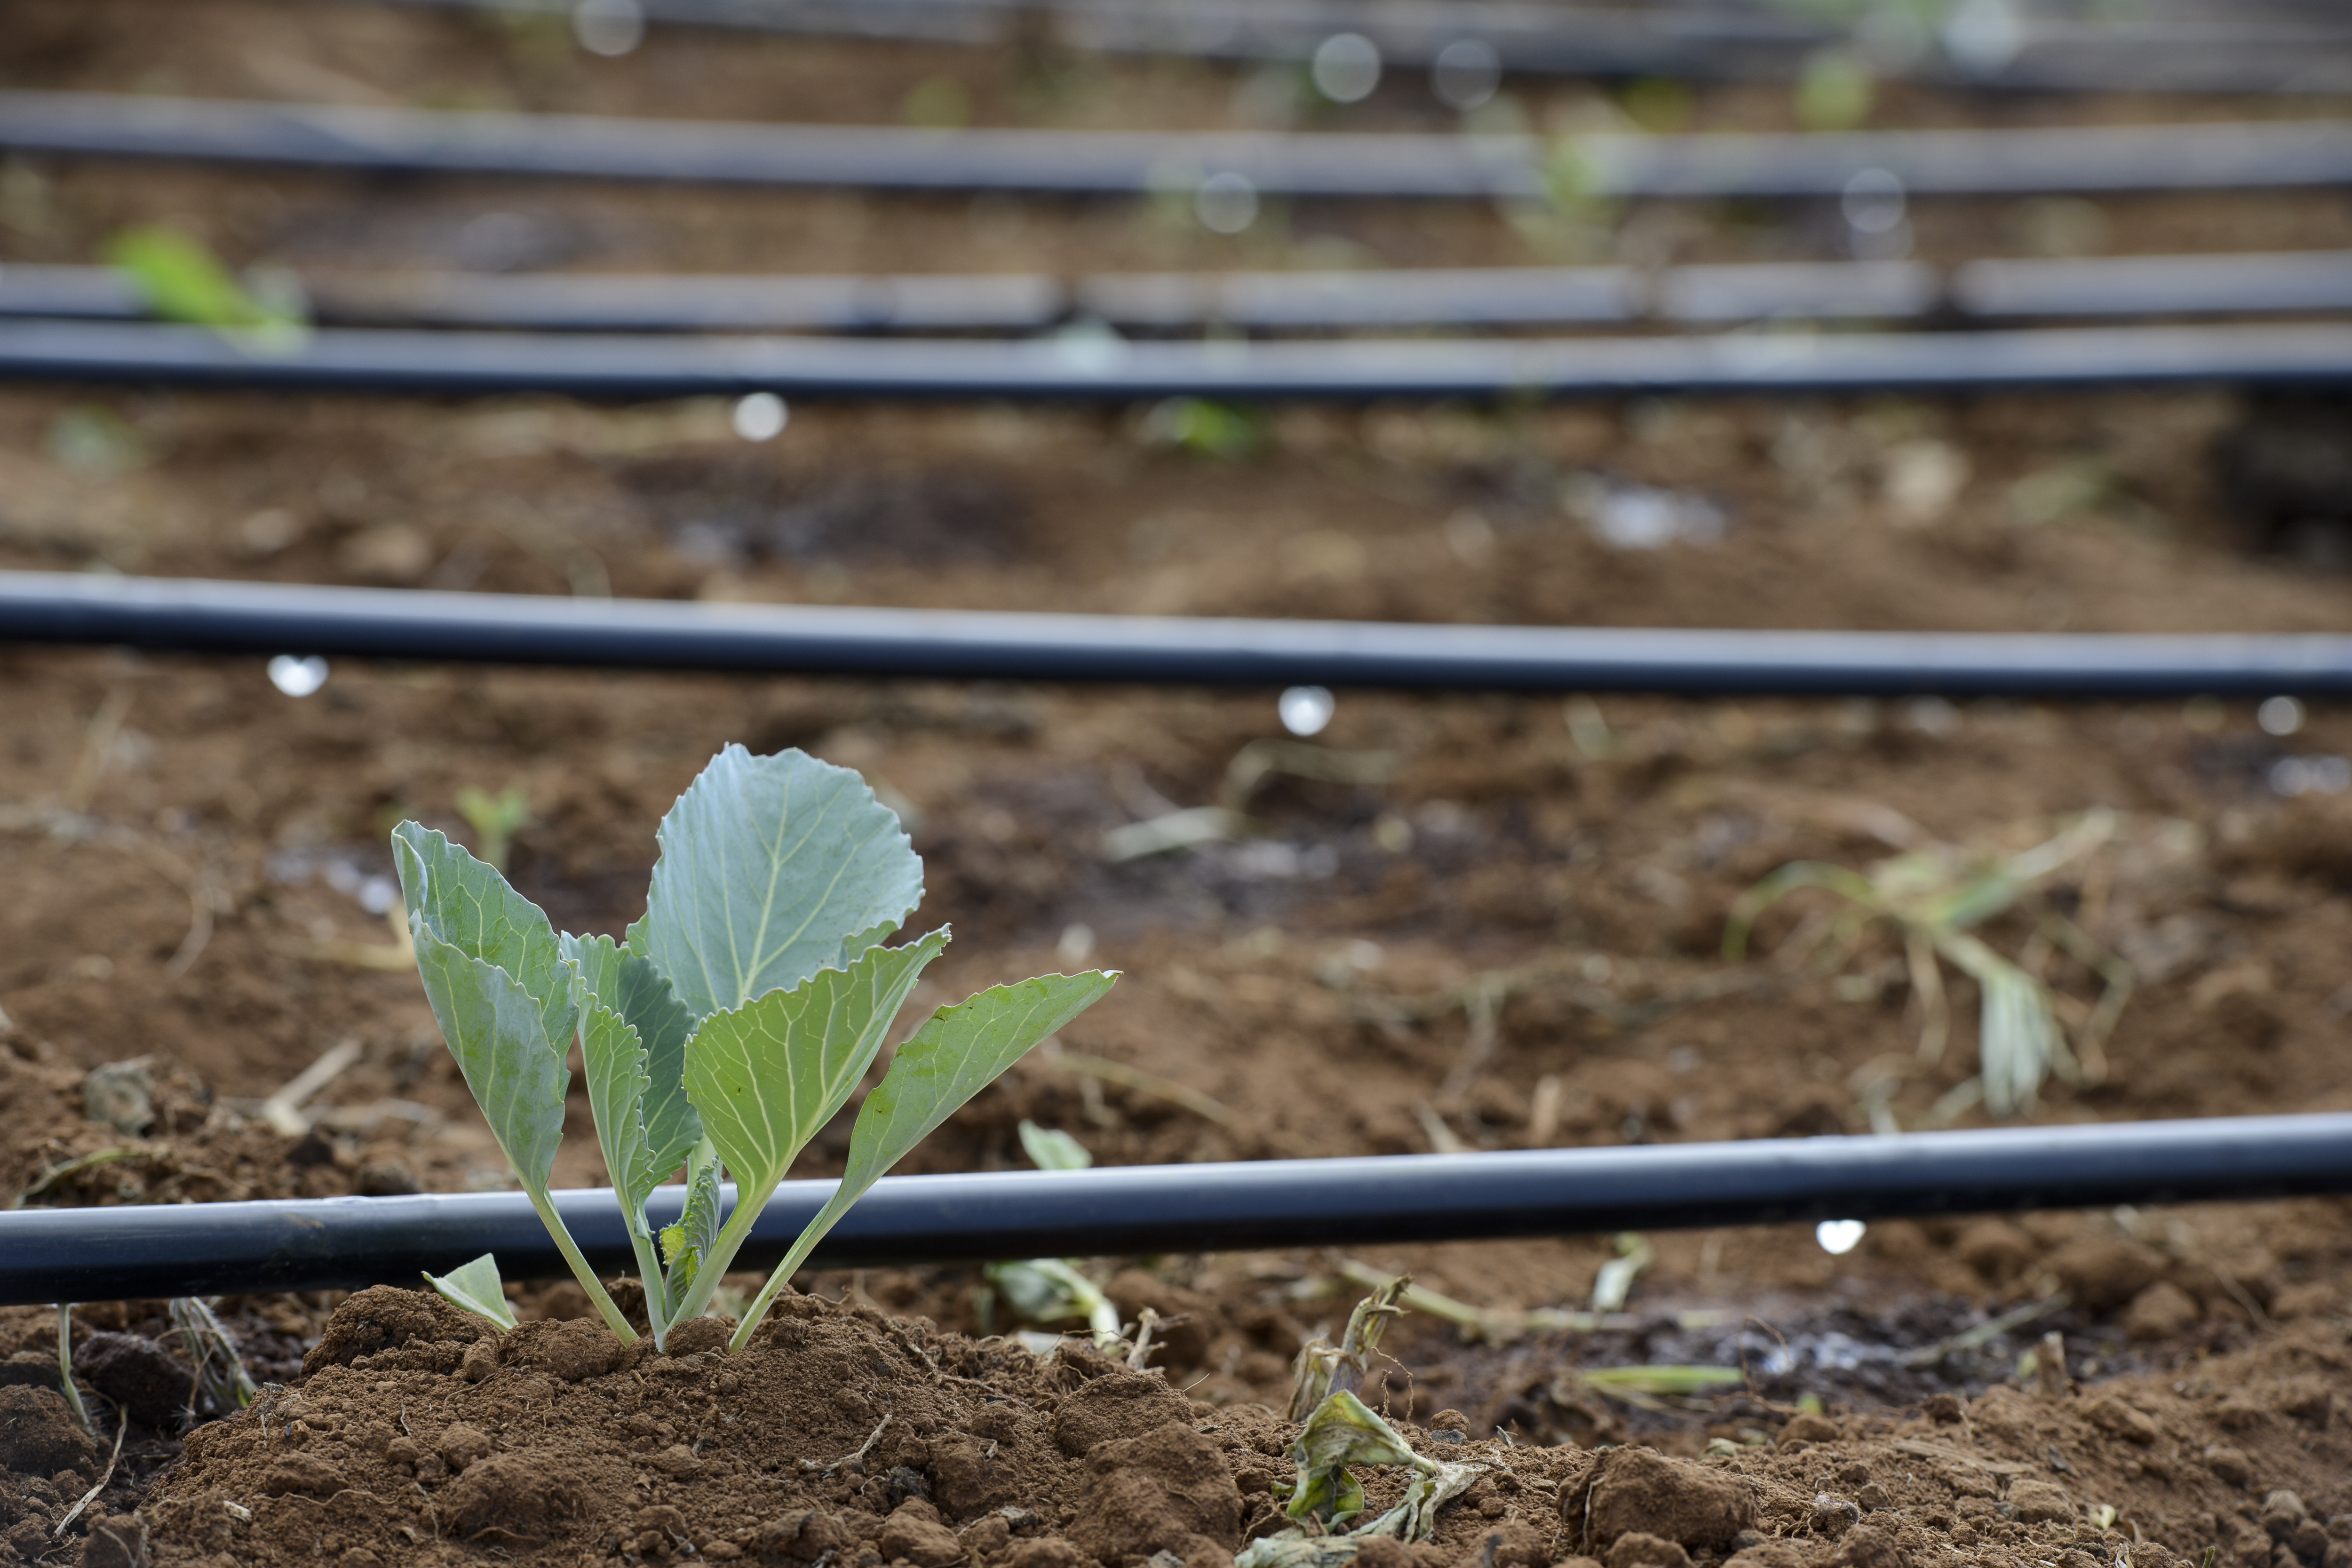 Drip irrigation in agriculture (©Böthling)